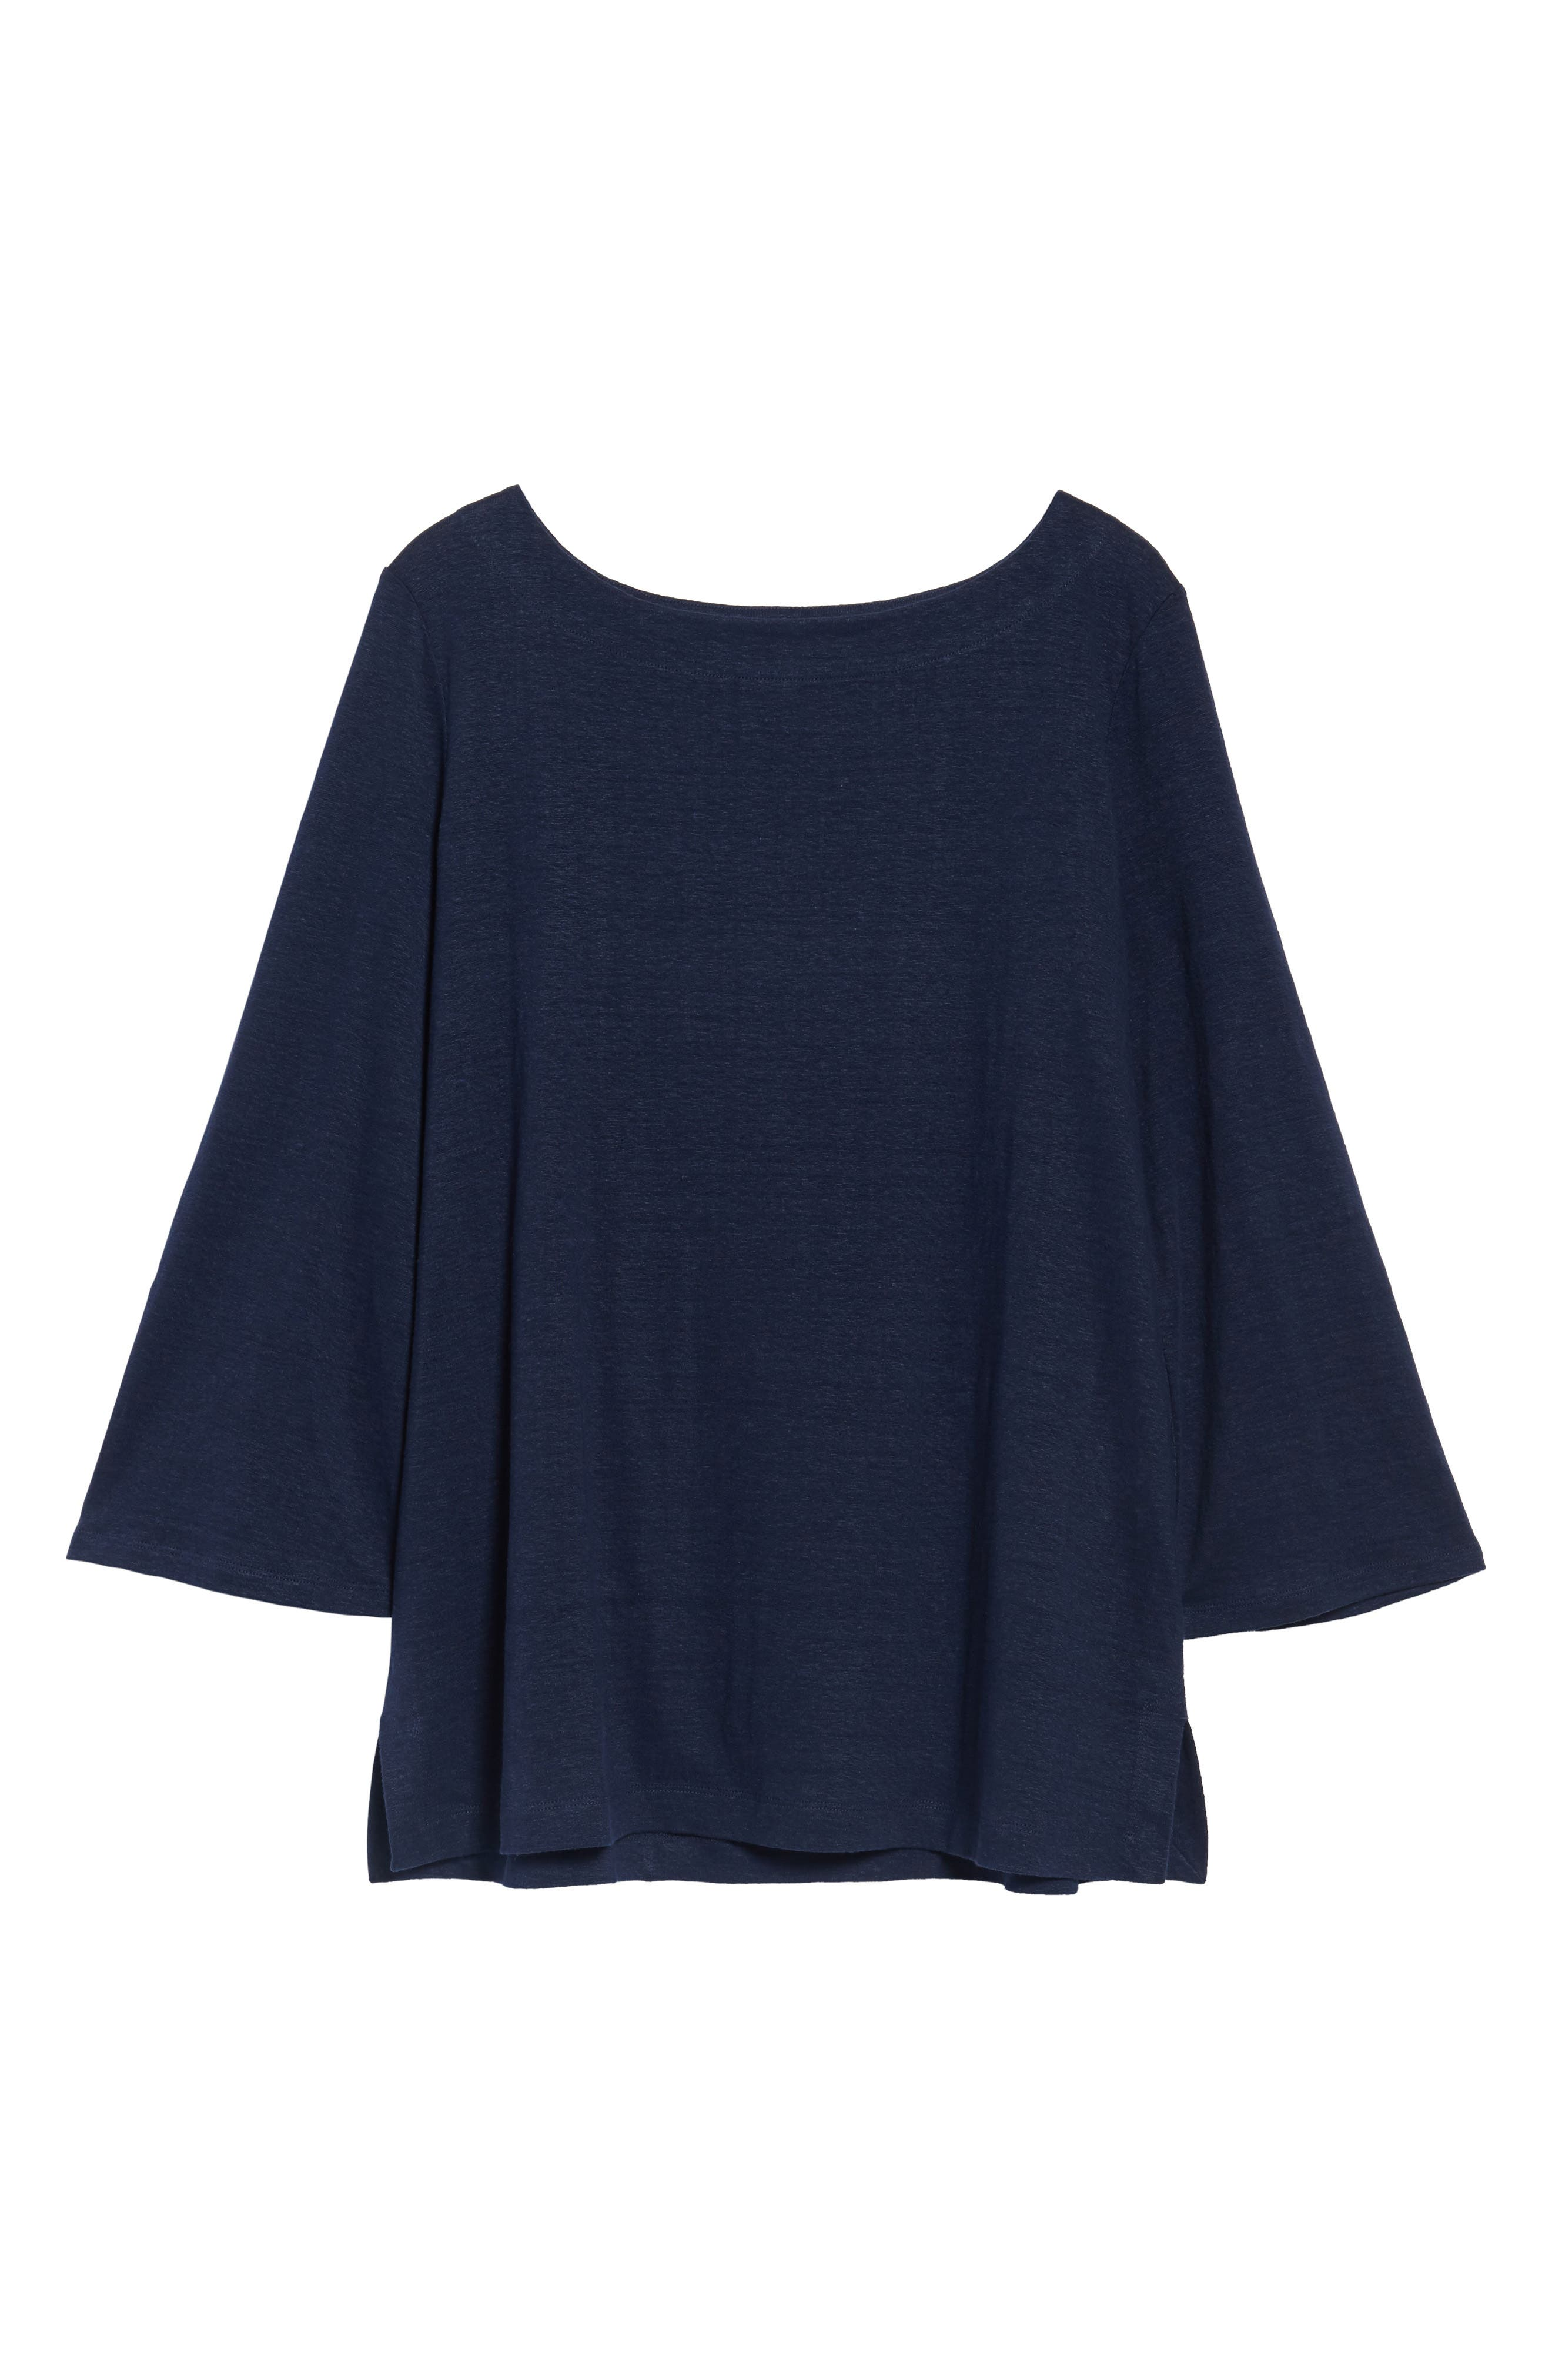 Organic Linen Bateau Neck Top,                             Alternate thumbnail 6, color,                             Midnight